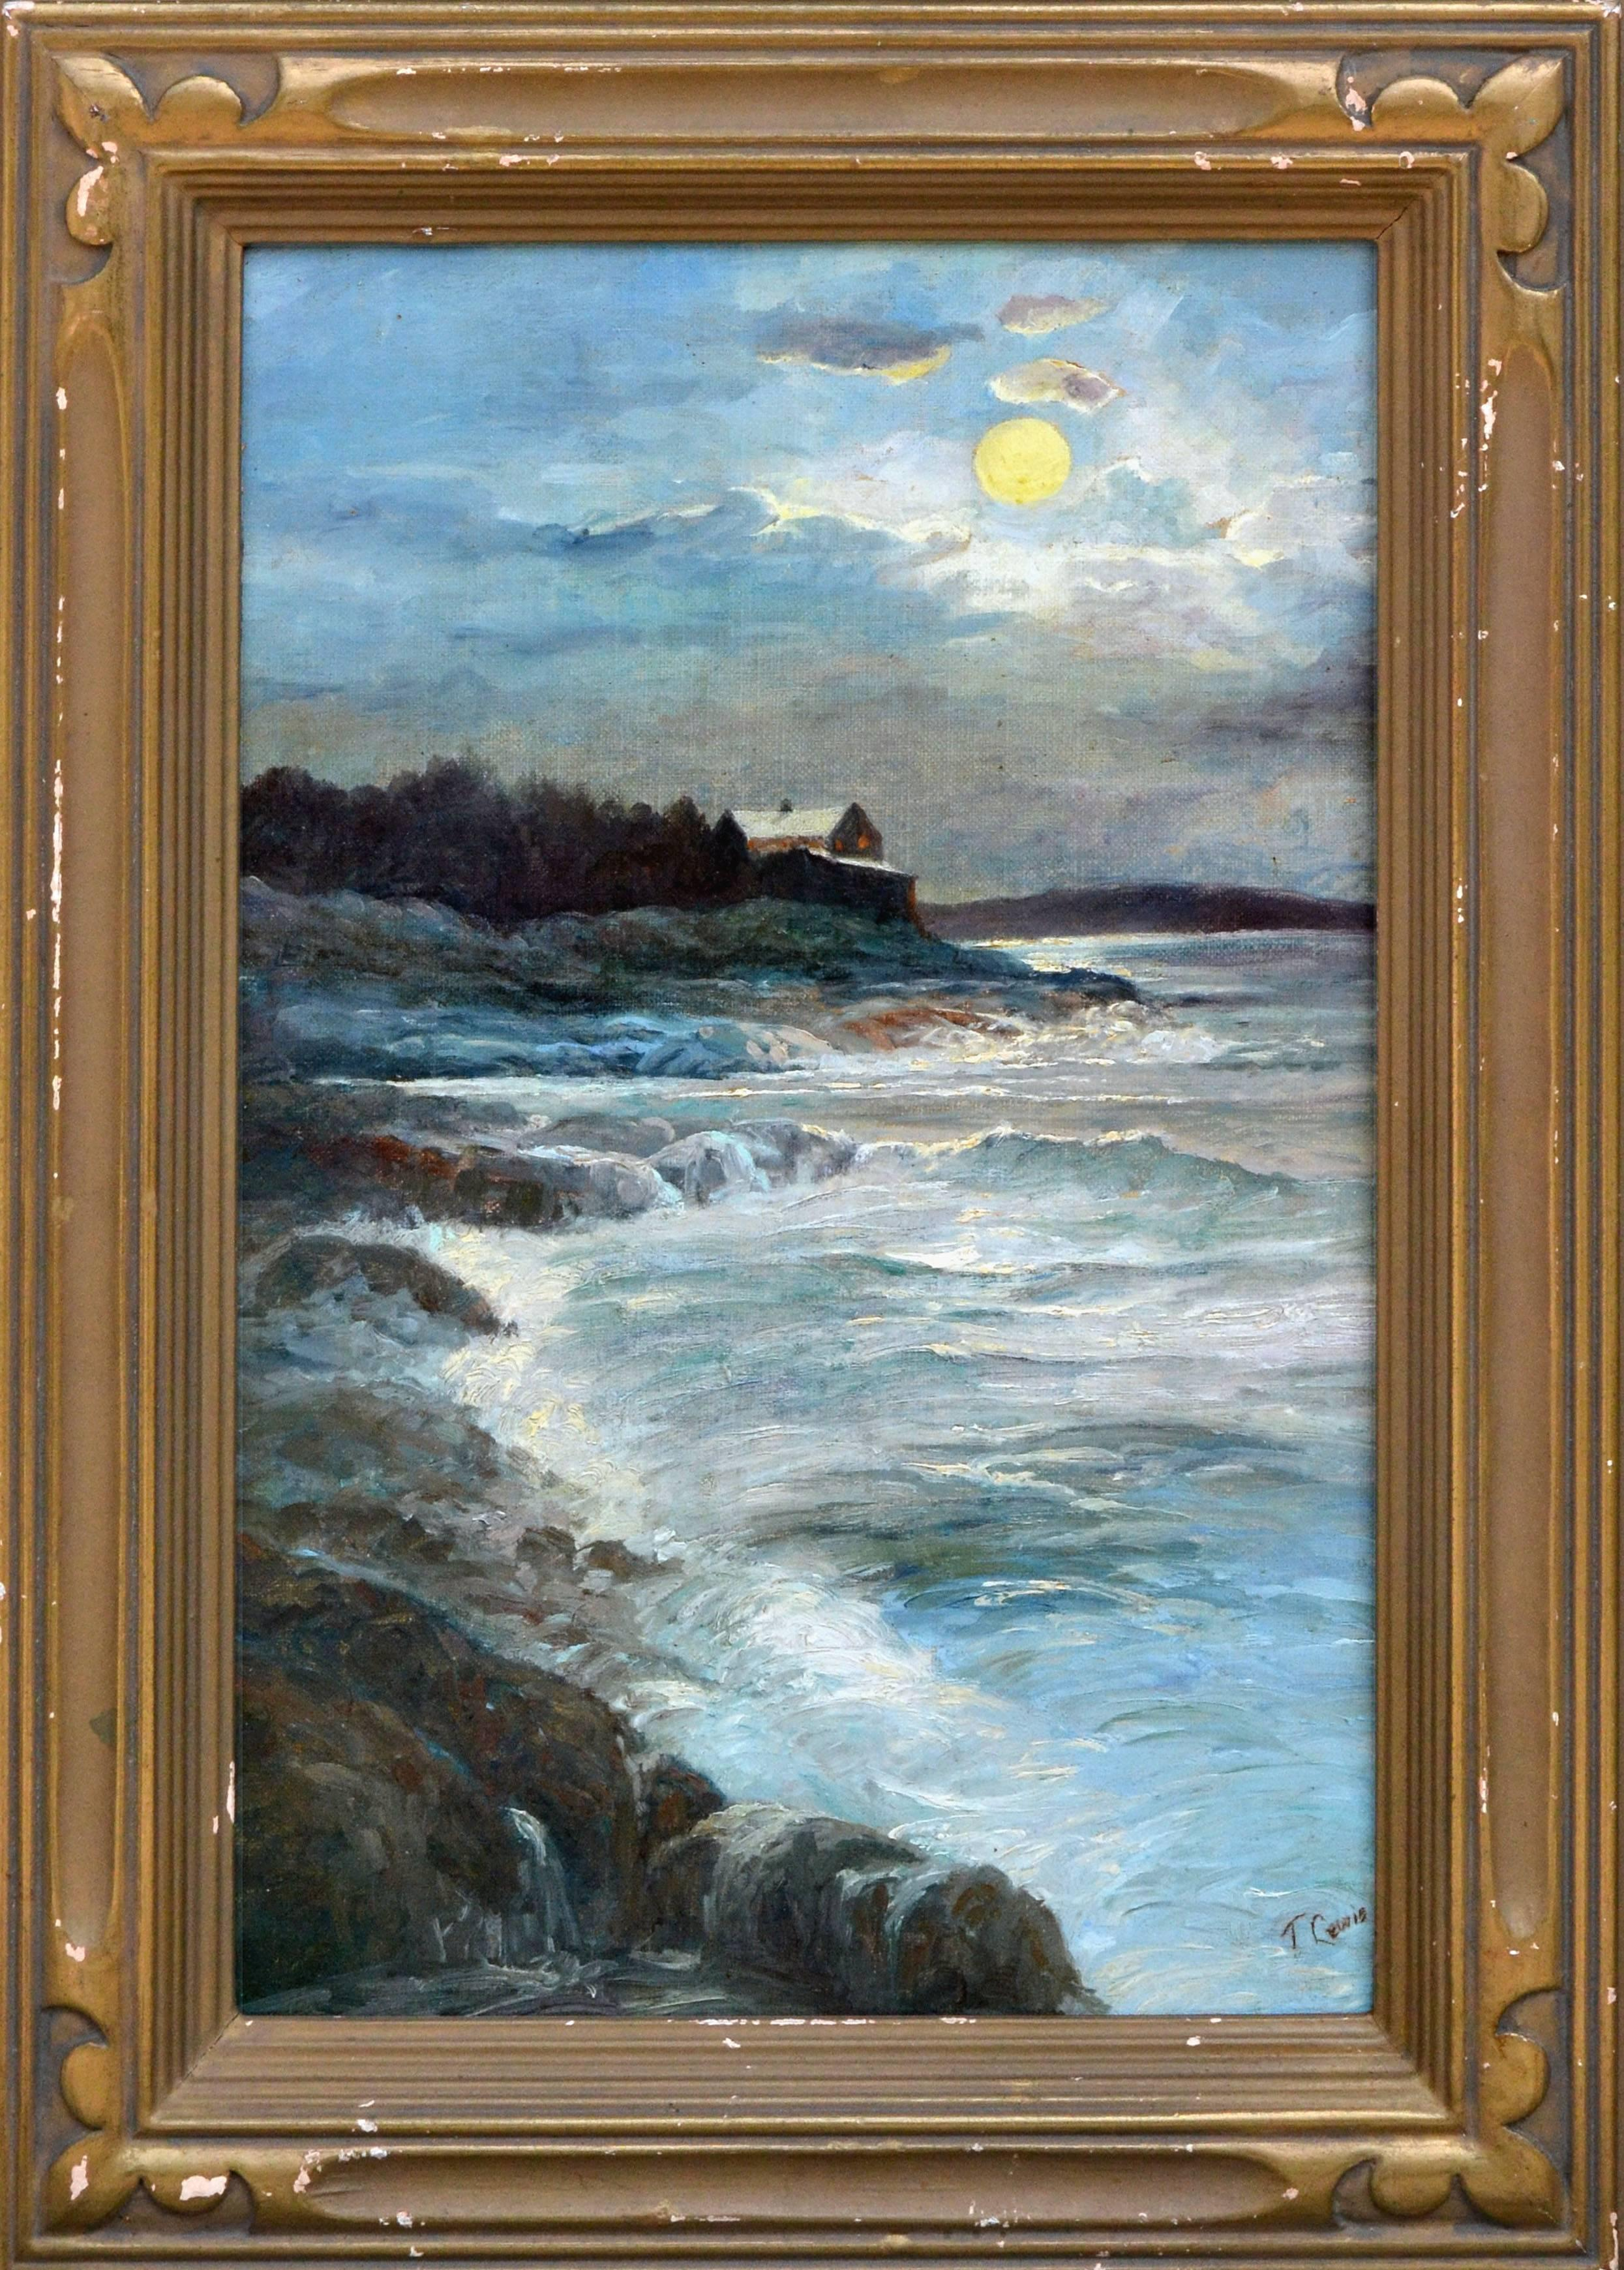 1920's Coastal Home Full Moon Landscape by T. Lewis